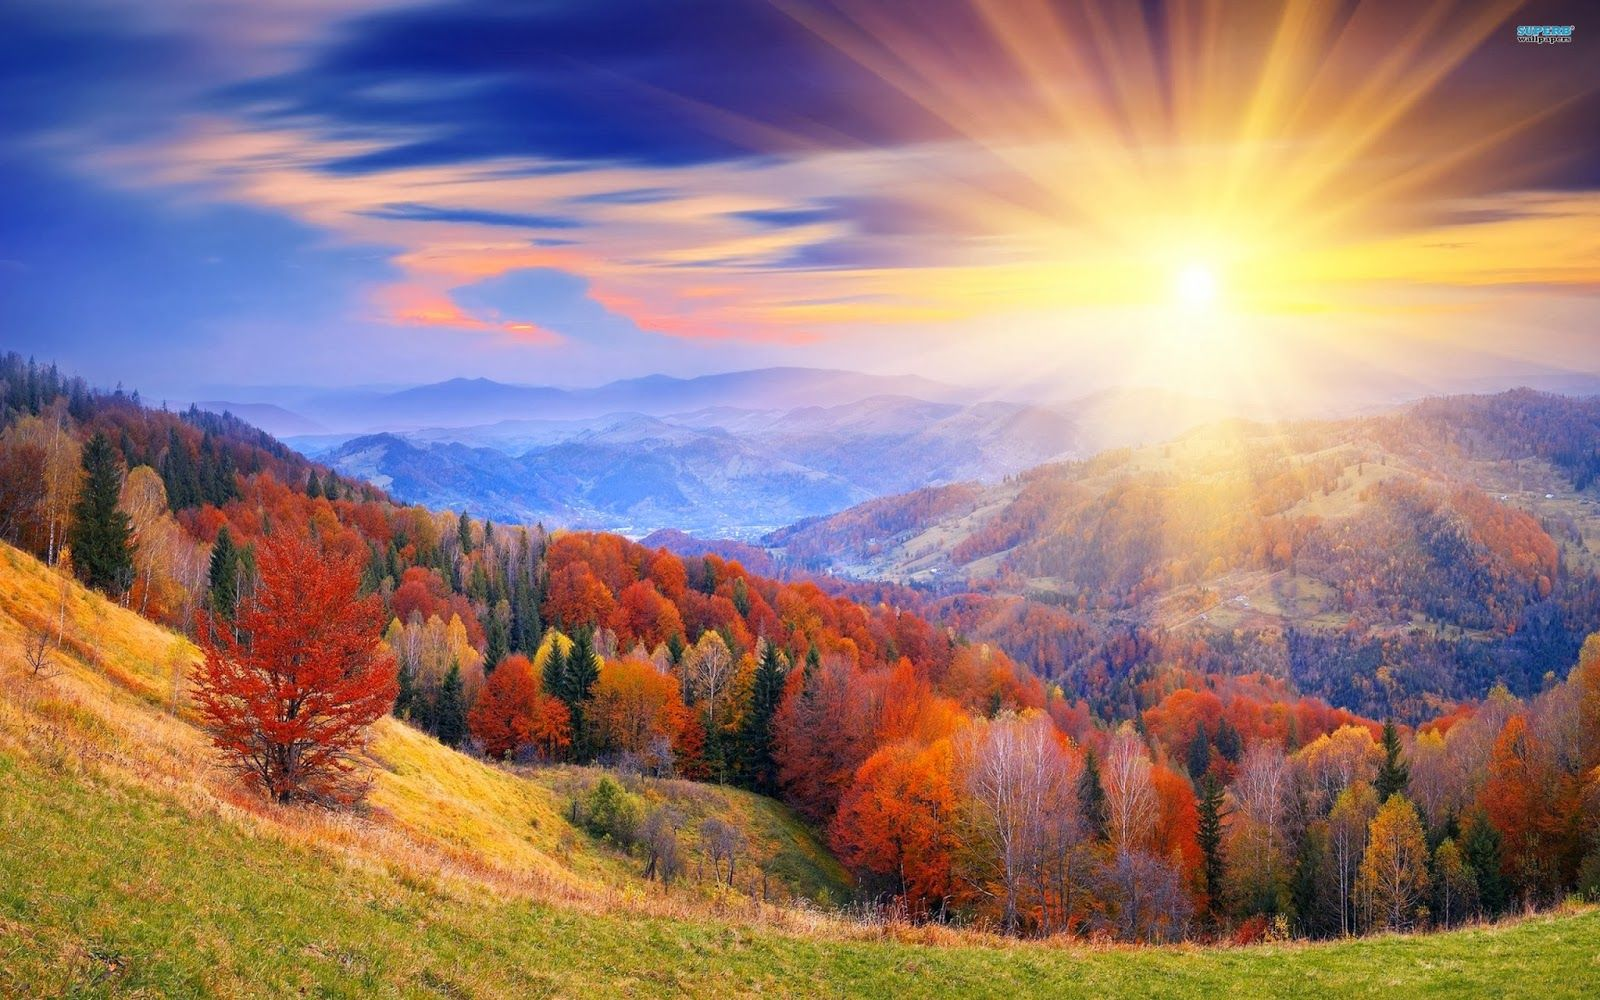 Sunrise Wallpapers Most Beautiful Places In The World Download Free Wallpapers Beautiful Nature Wallpaper Sunrise Wallpaper Nature Wallpaper